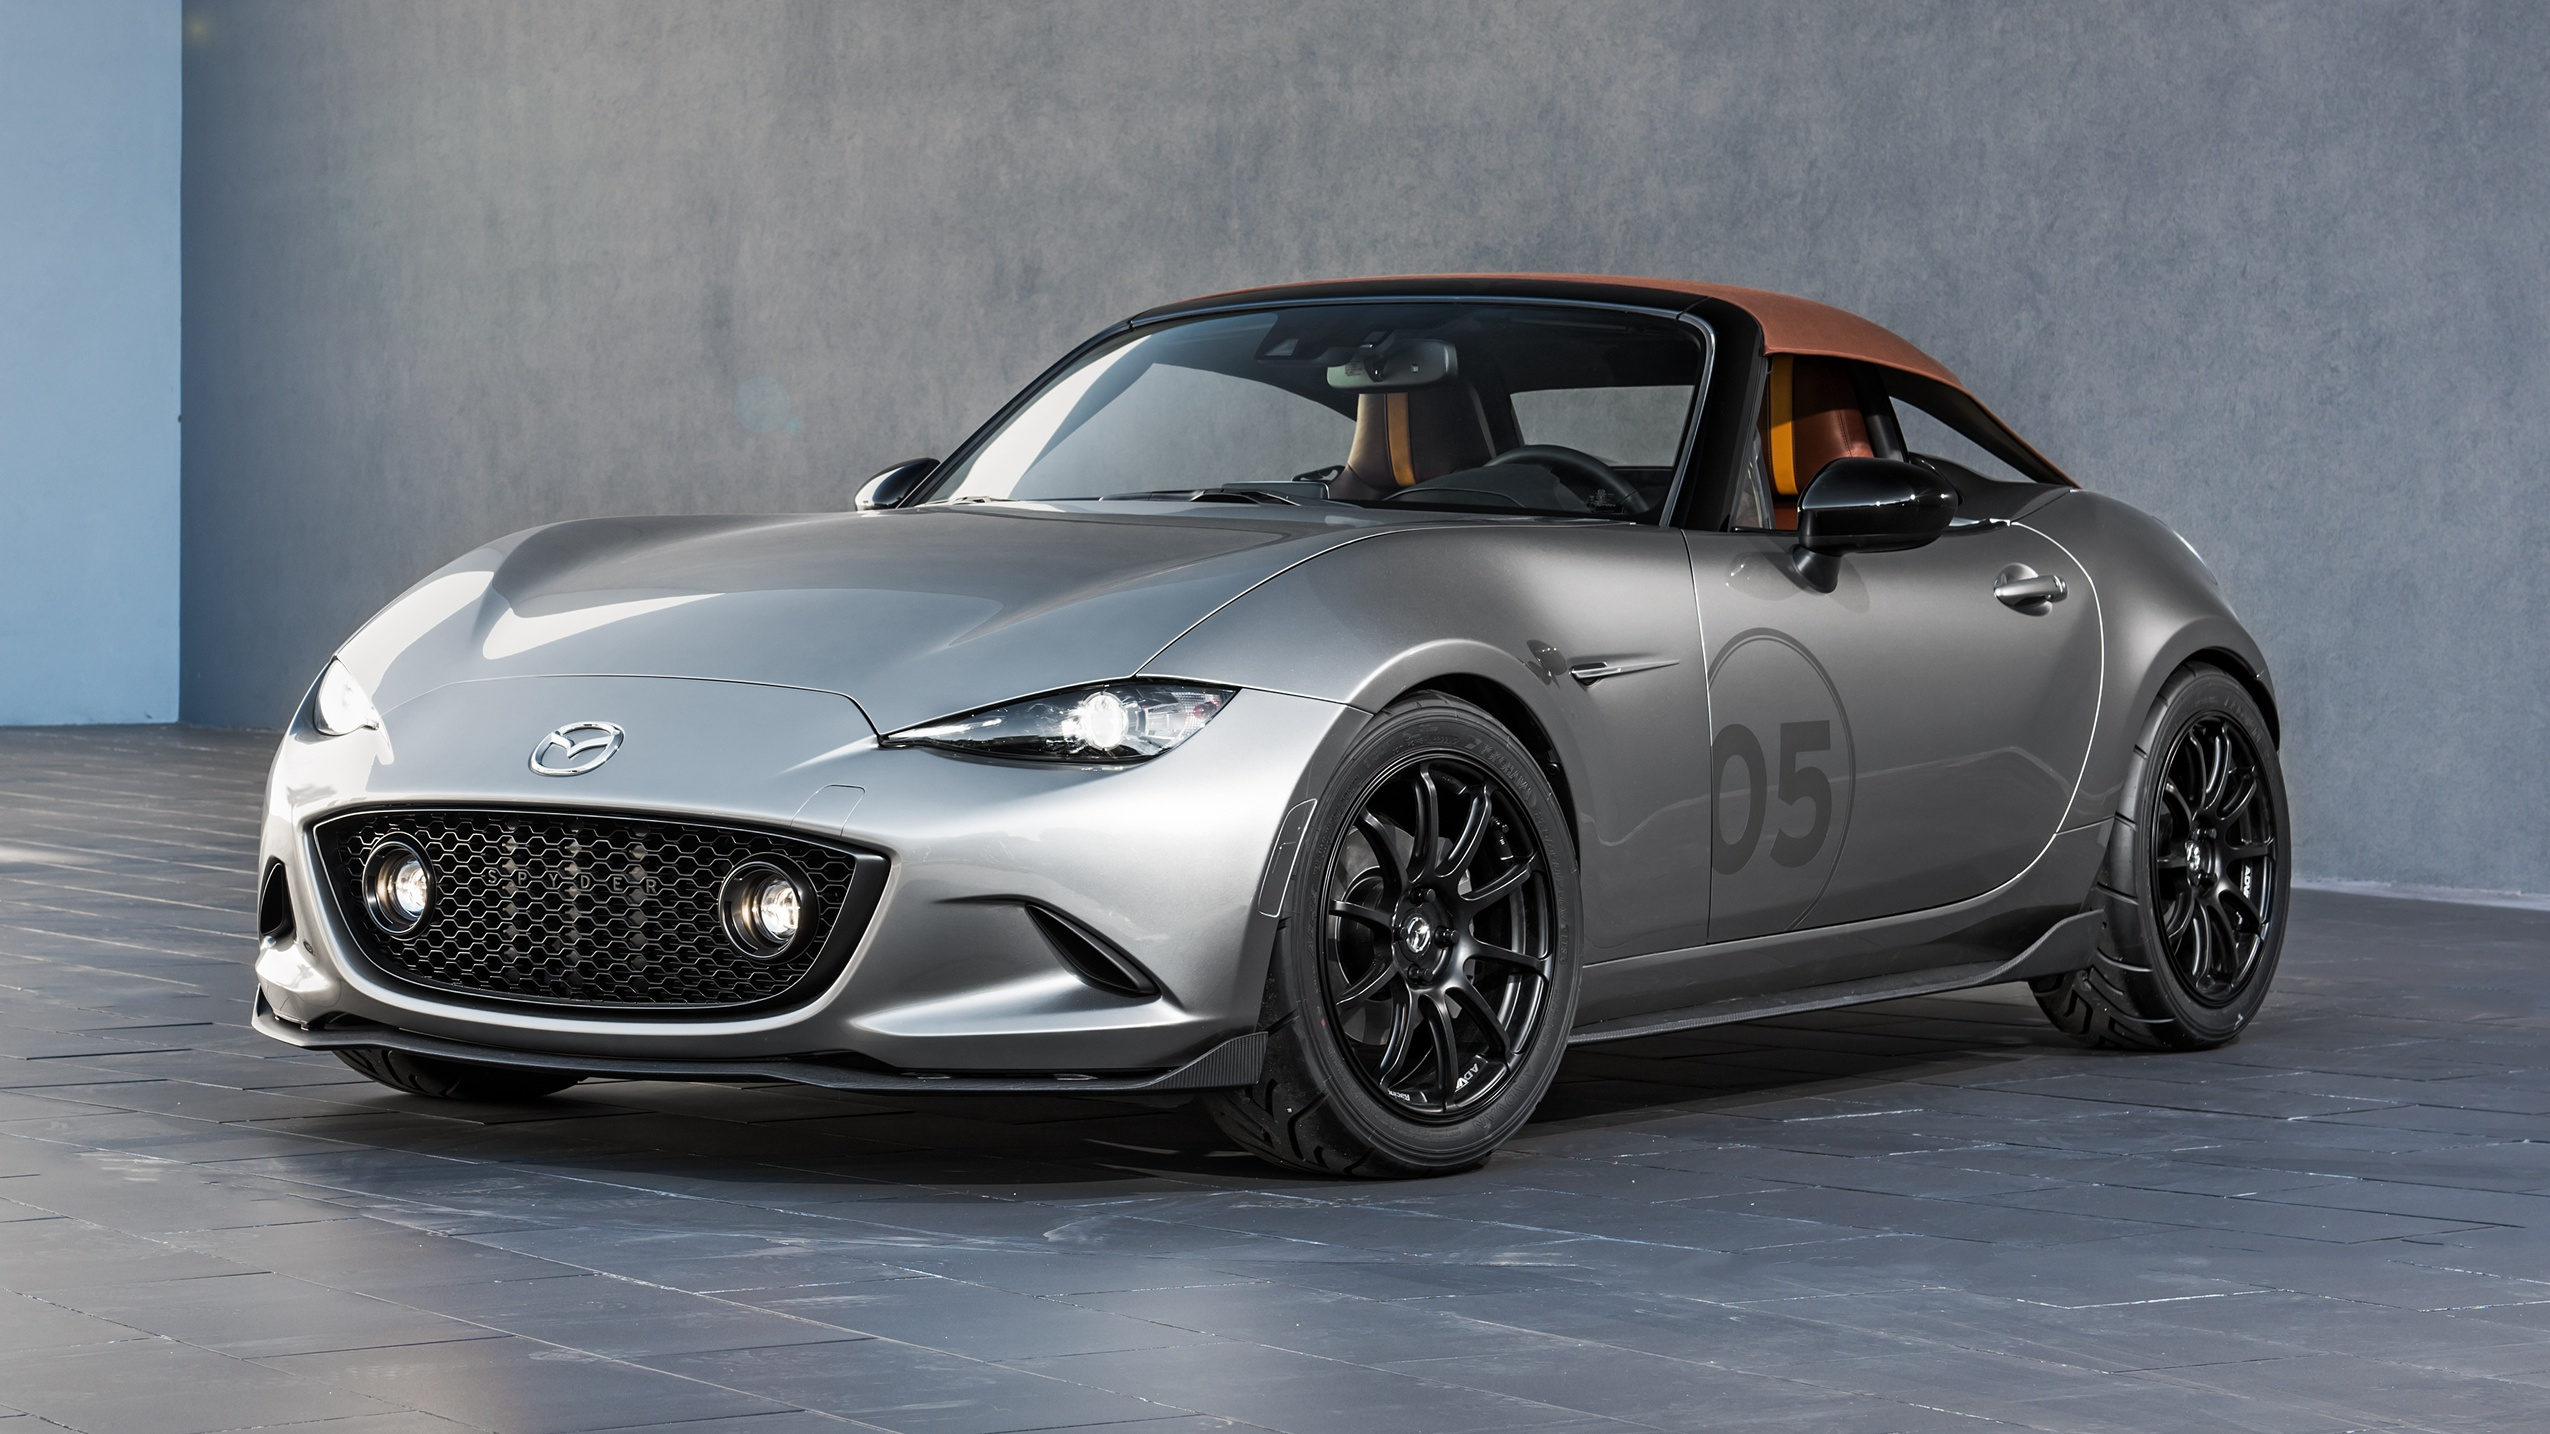 news mazda mx 5 might get 135kw engine for 2019. Black Bedroom Furniture Sets. Home Design Ideas